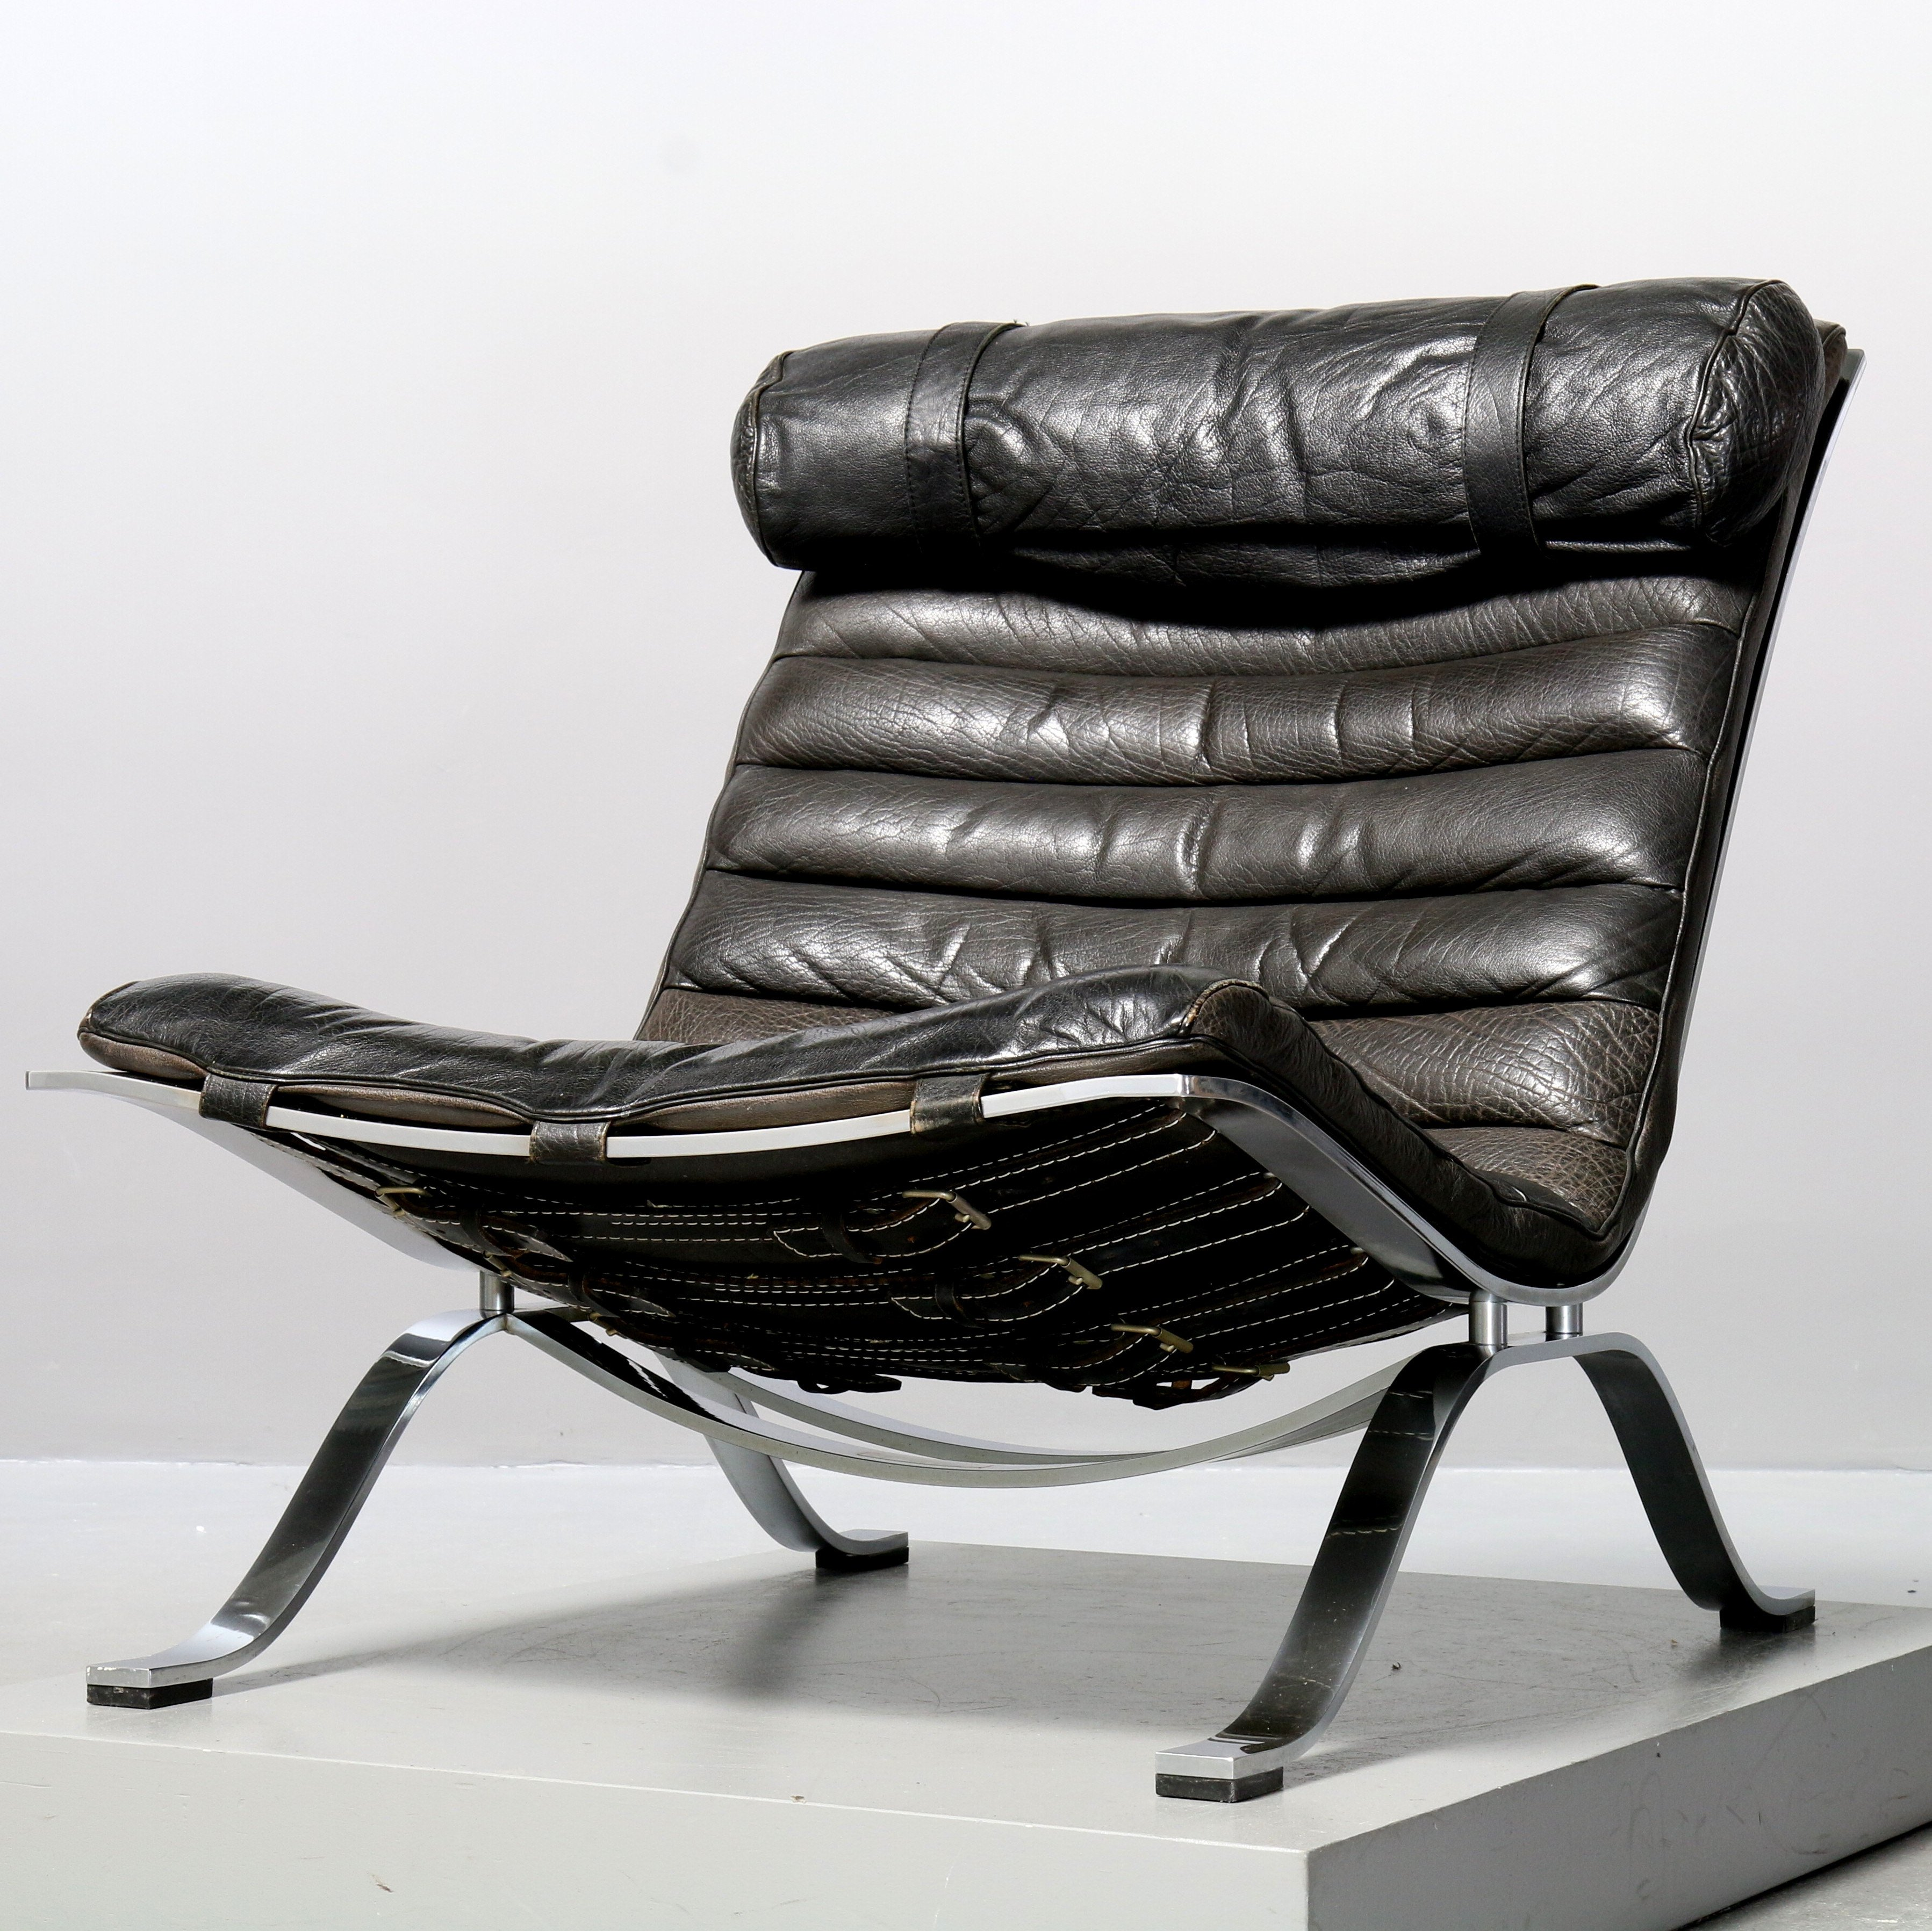 Replica Möbel Legal Black Leather 'ari' Lounge Chair By Arne Norell For Aneby Möbel Ab, Sweden 1980s | #122349